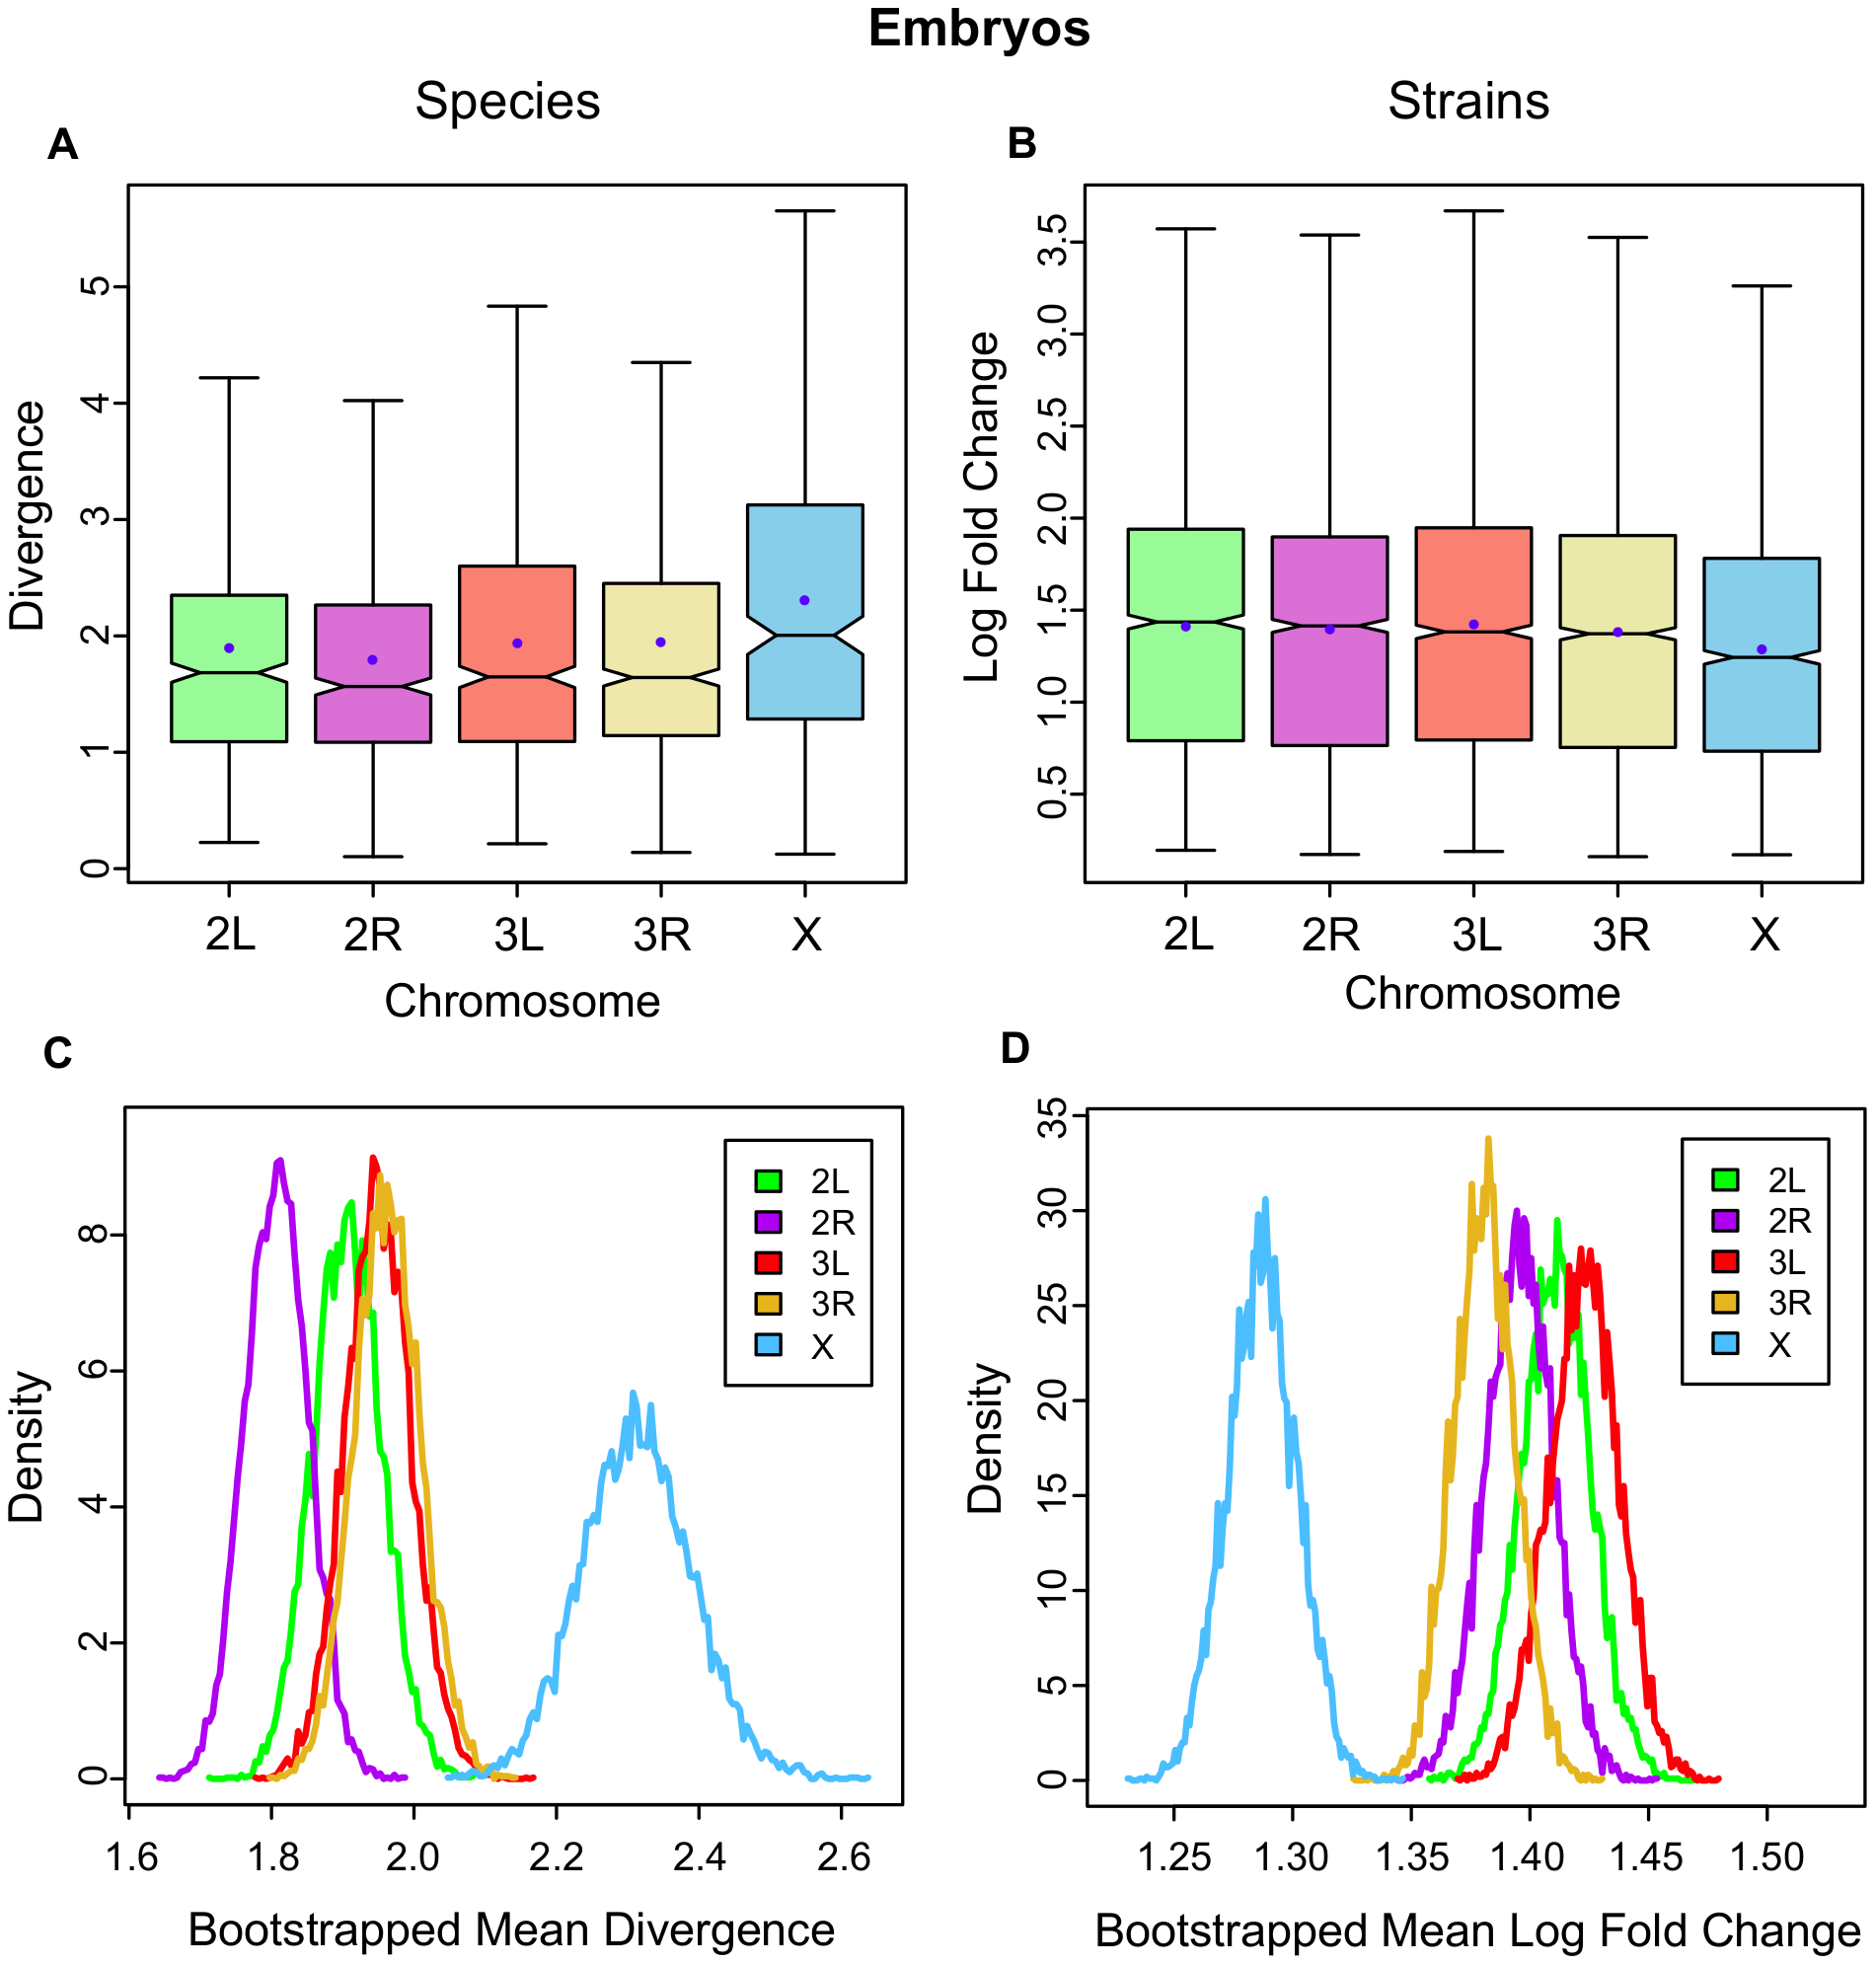 Gene expression divergence is higher on the X chromosome in <i>Drosophila</i> embryos and lower in <i>D. melanogaster</i> strains.